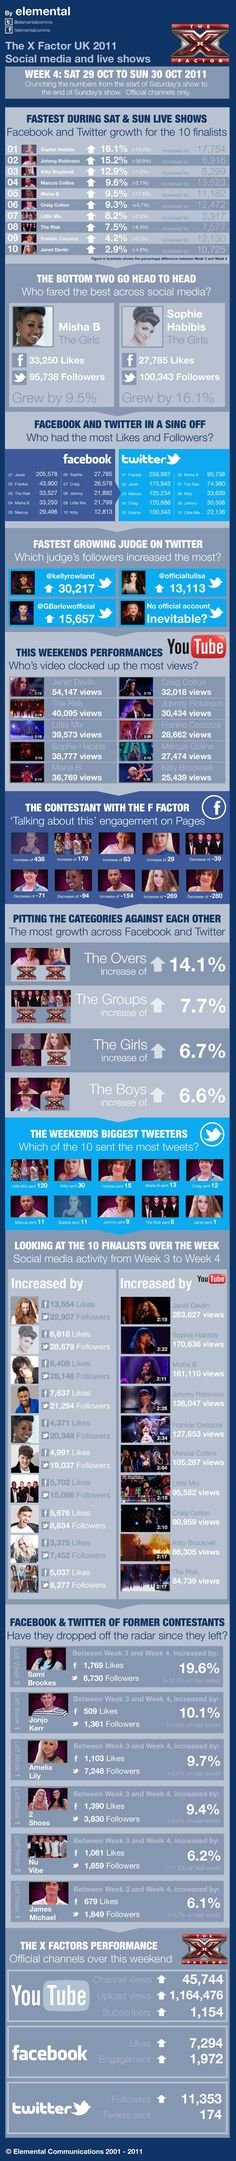 X Factor social media infographic for Week 4